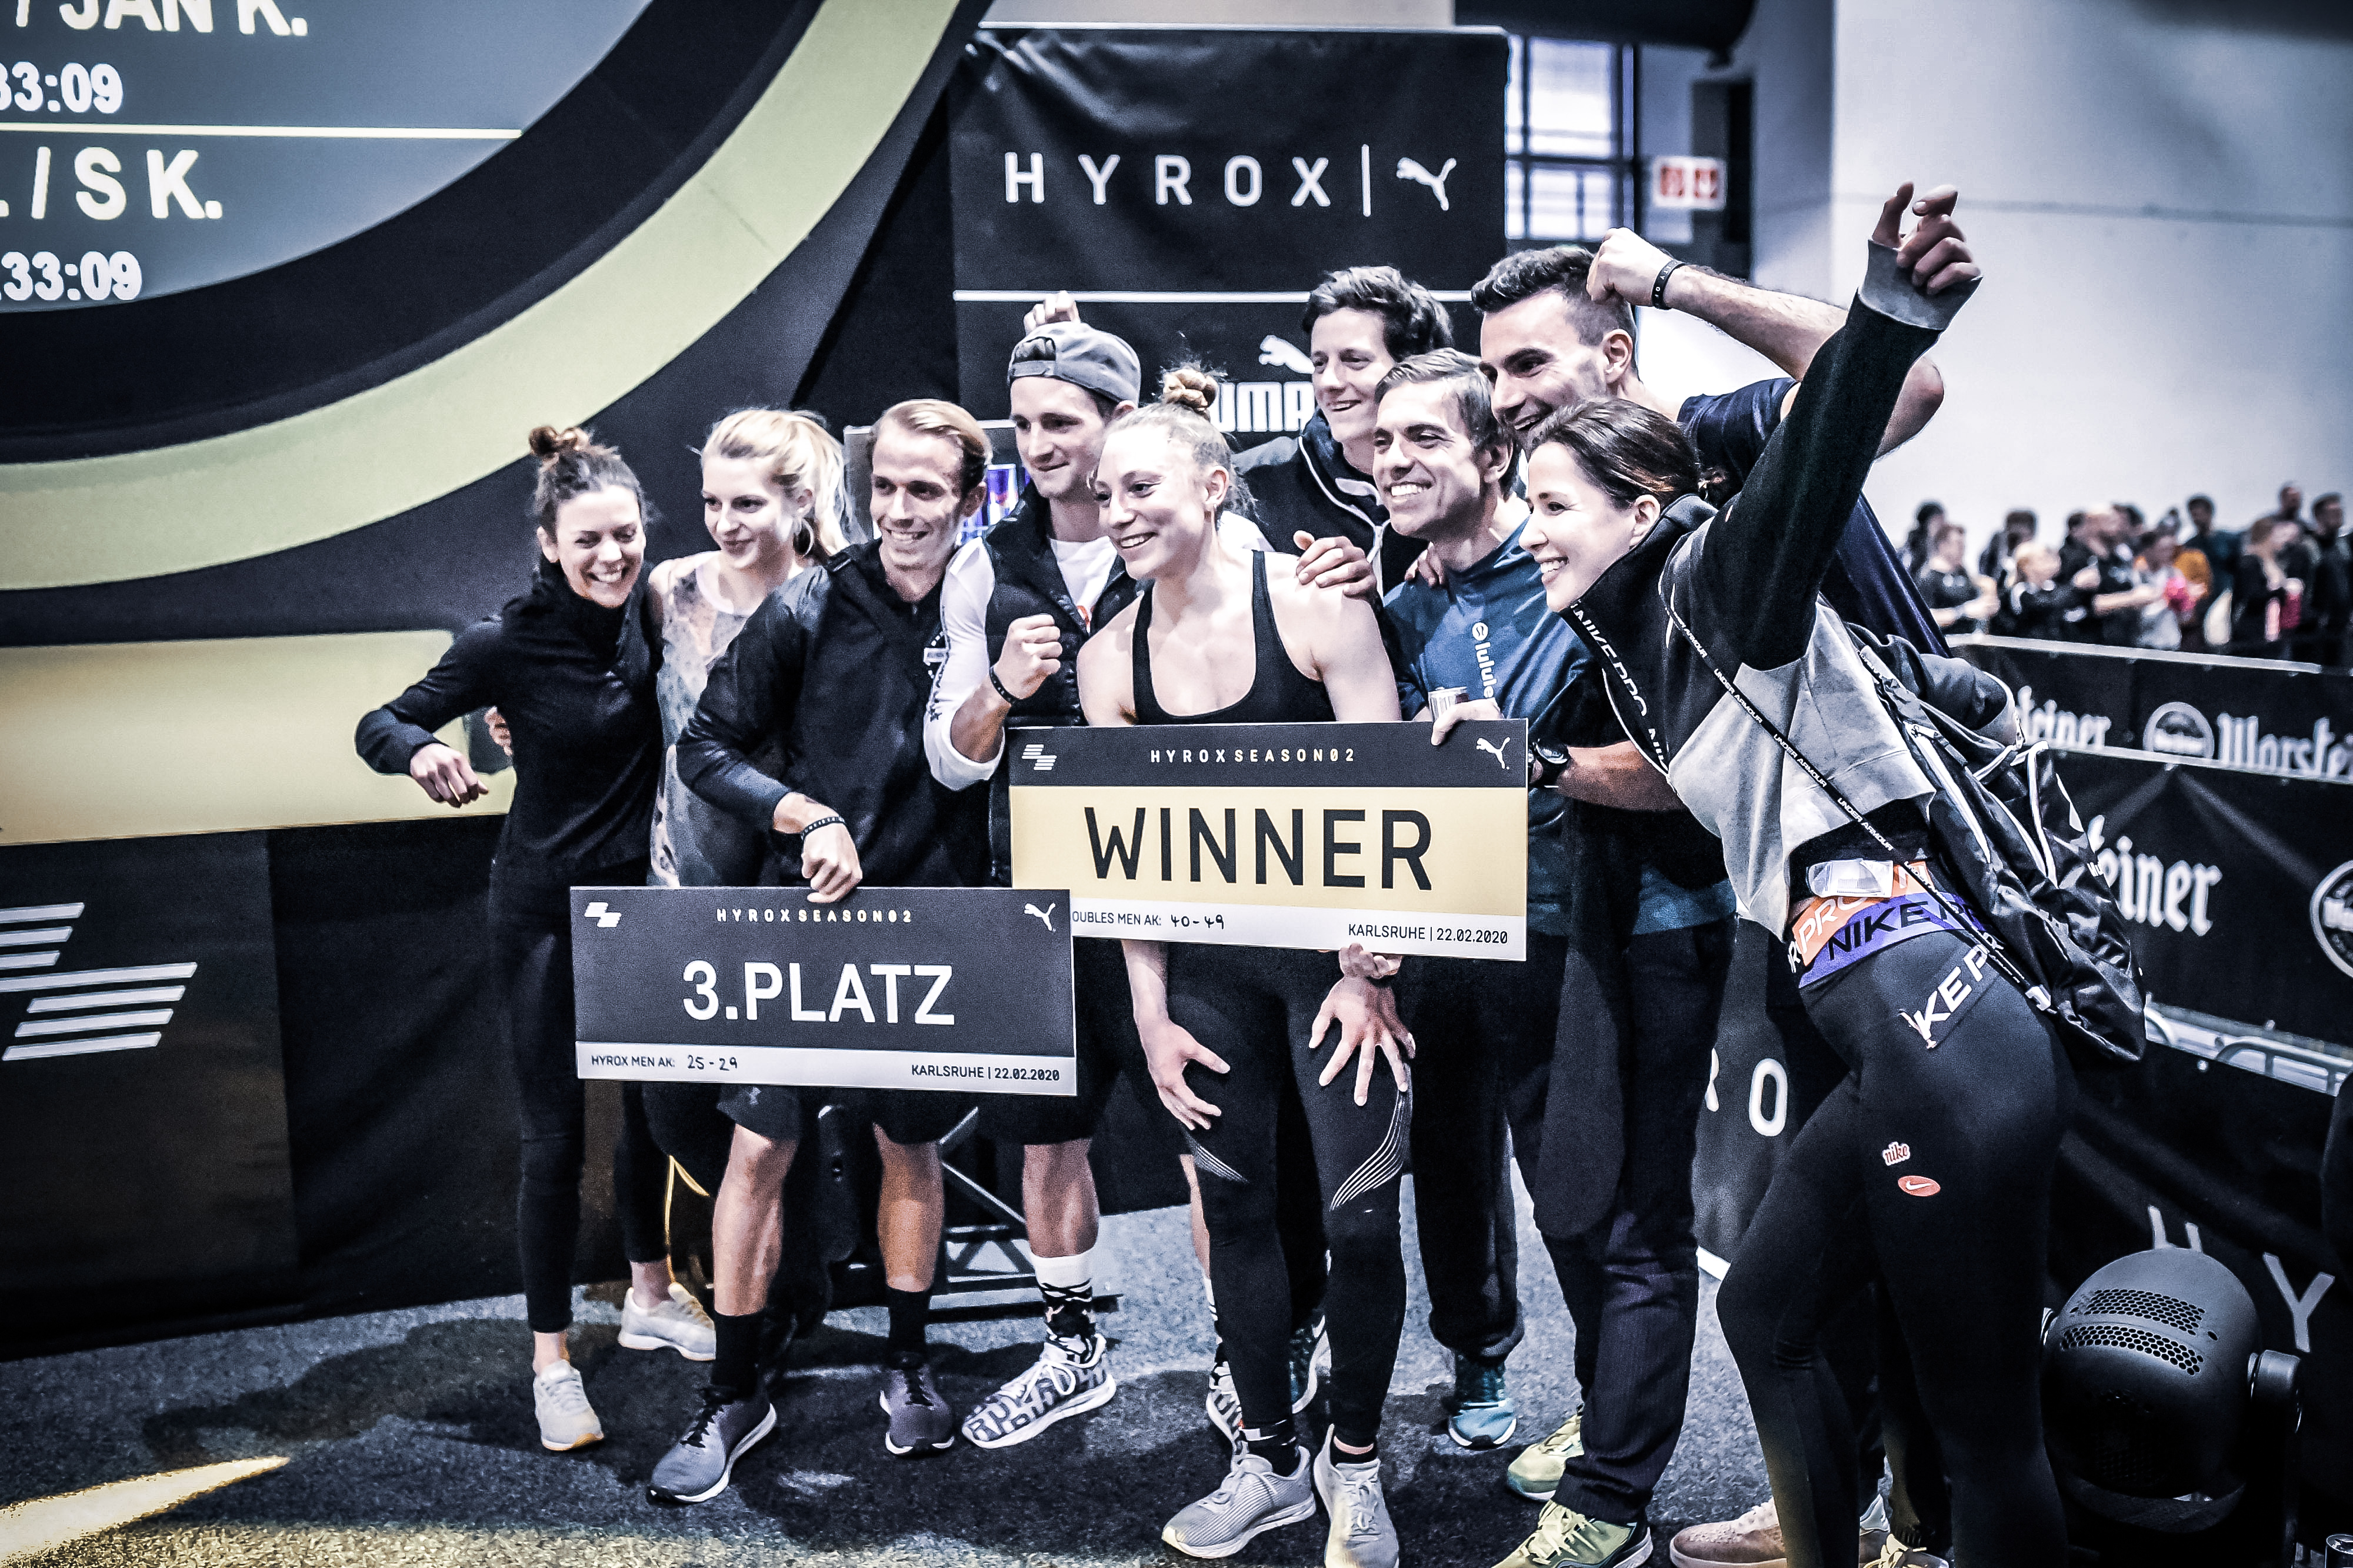 Hyrox World Series of fitness is coming to the Netherlands!